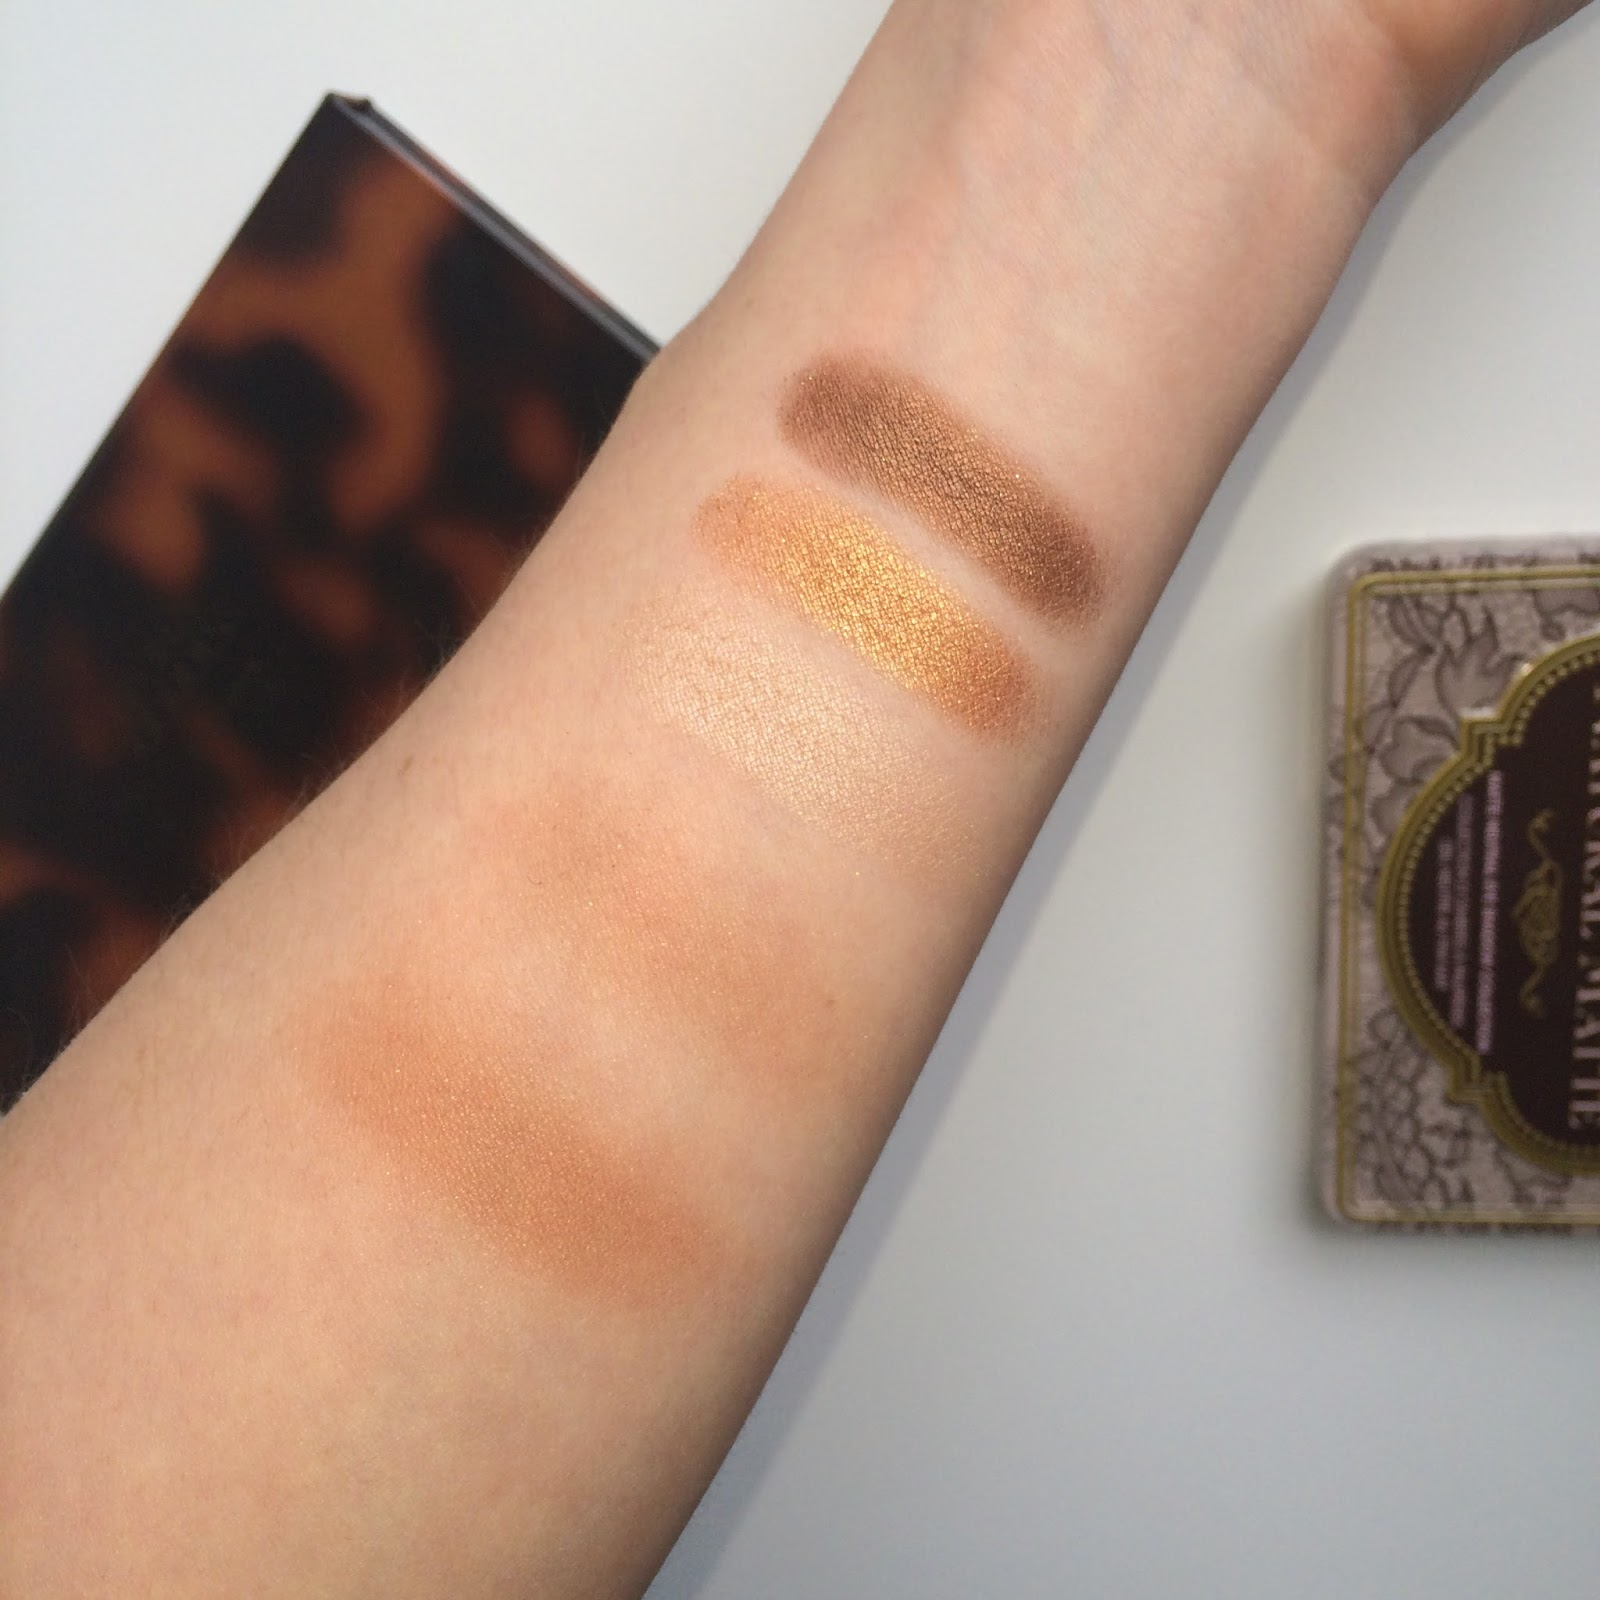 Estee Lauder Bronze Goddess Palette swatches on fair skin